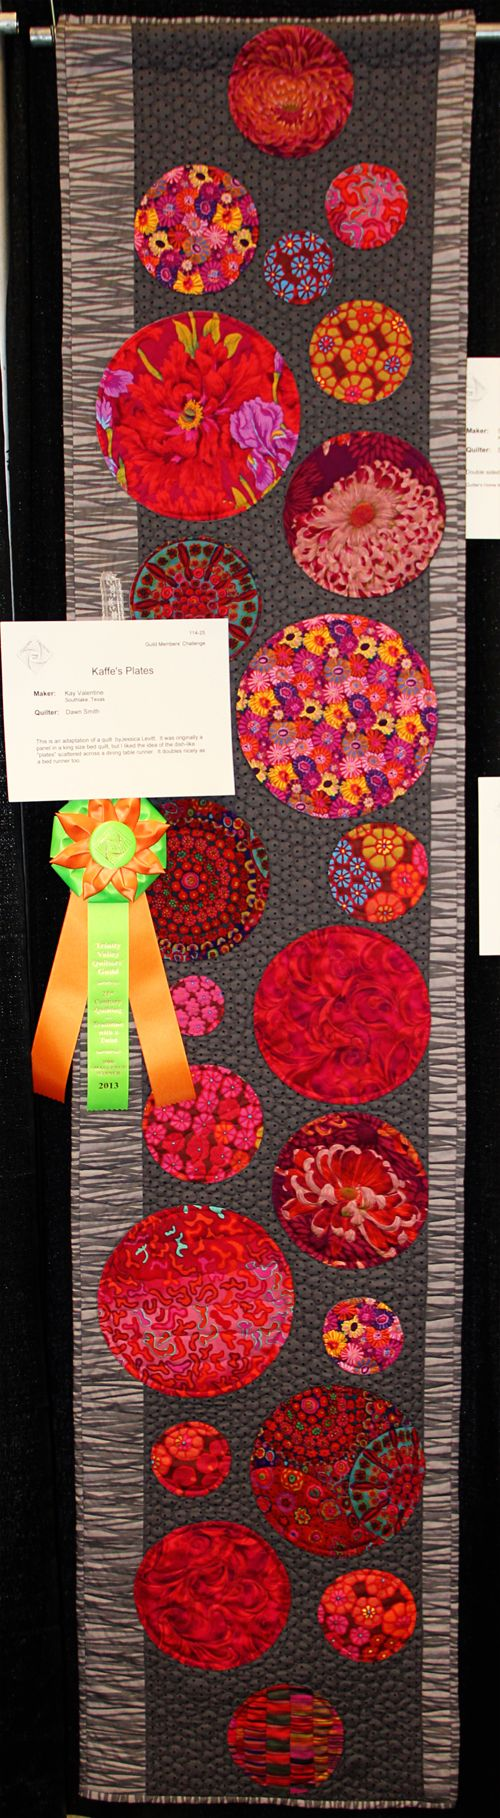 Kaffe's Plates (Maker: Kay Valentine, Quilter: Dawn Smith). Trinity Valley Quilters' Guild – 2013 Quilt Show. Photo by Cookie's Creek